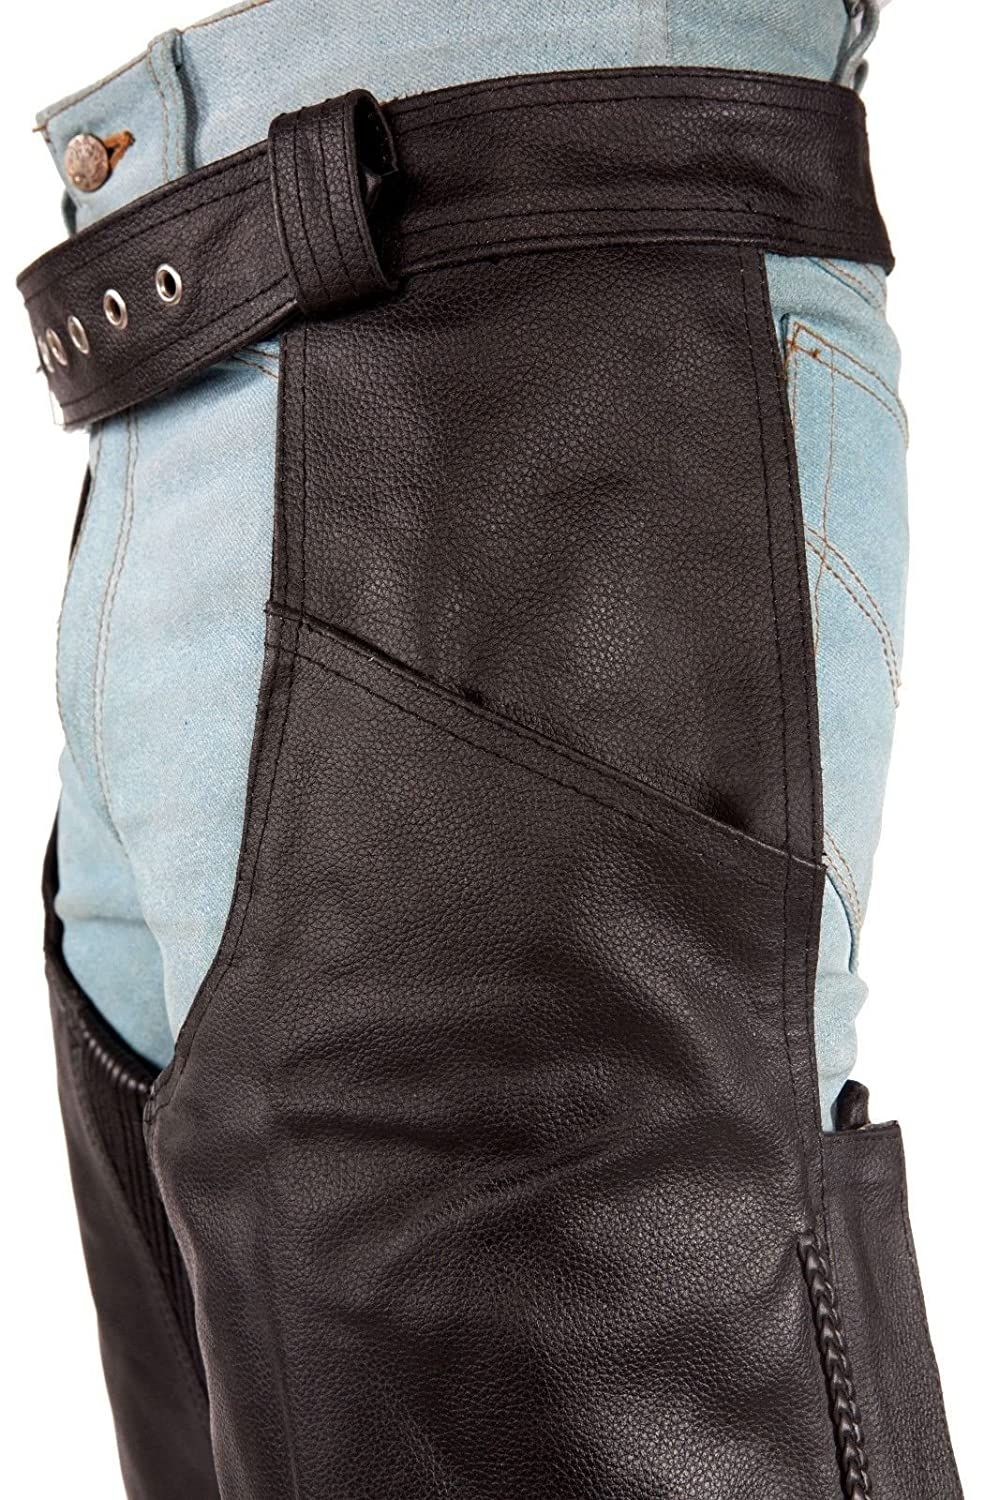 Dream MENS MOTORCYCLE BLACK LEATHER RIDING CHAP PANTS BRAIDED COW HIDE LEATHER NEW 3XL Regular